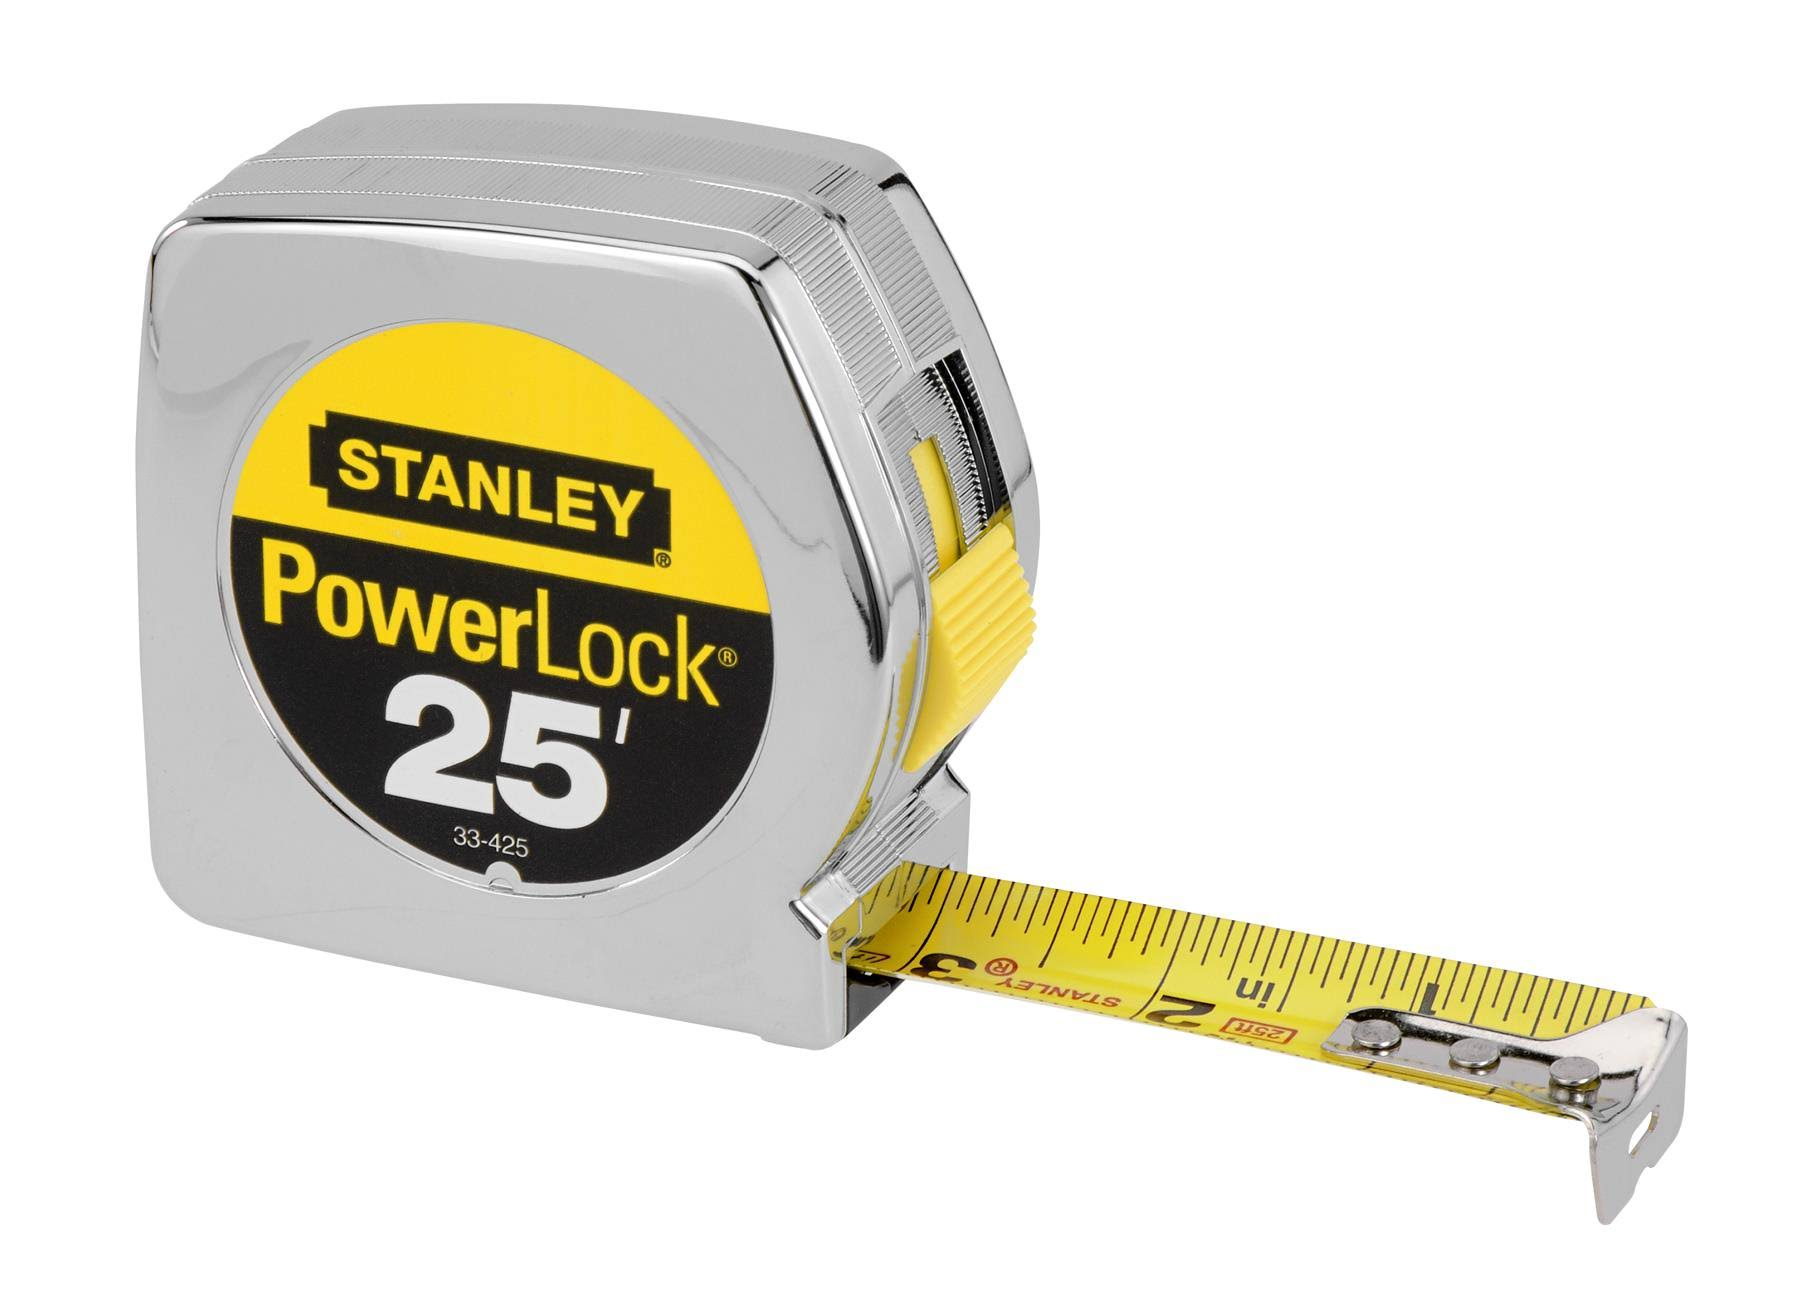 Stanley PowerLock Retractable Blade Tape Measure - 25ft